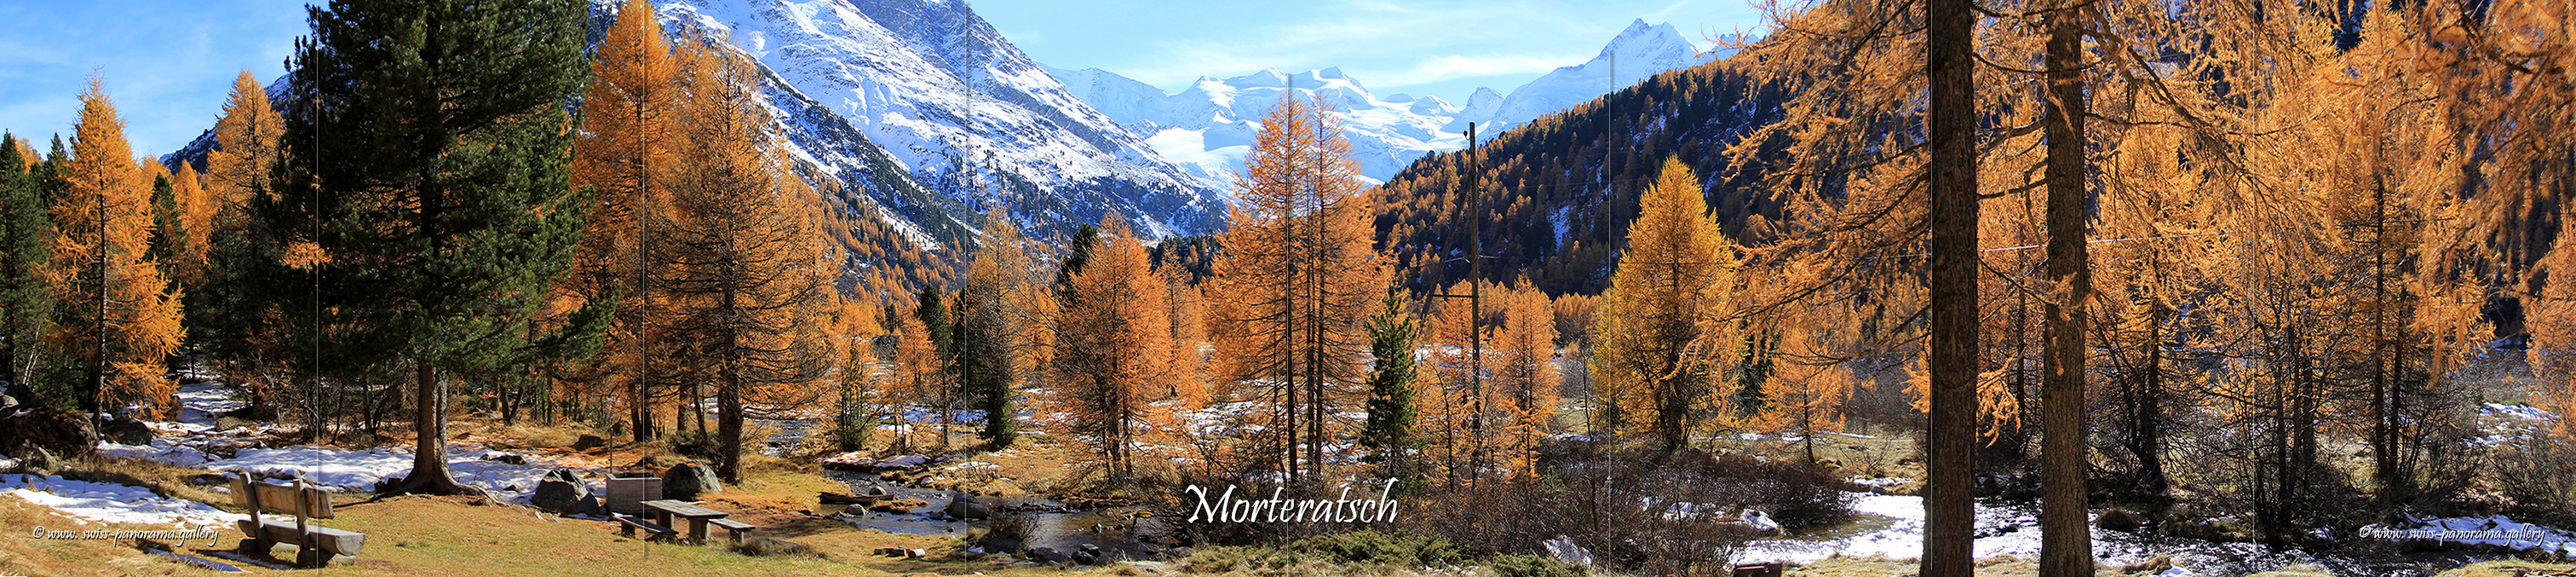 Morteratsch valley panorama